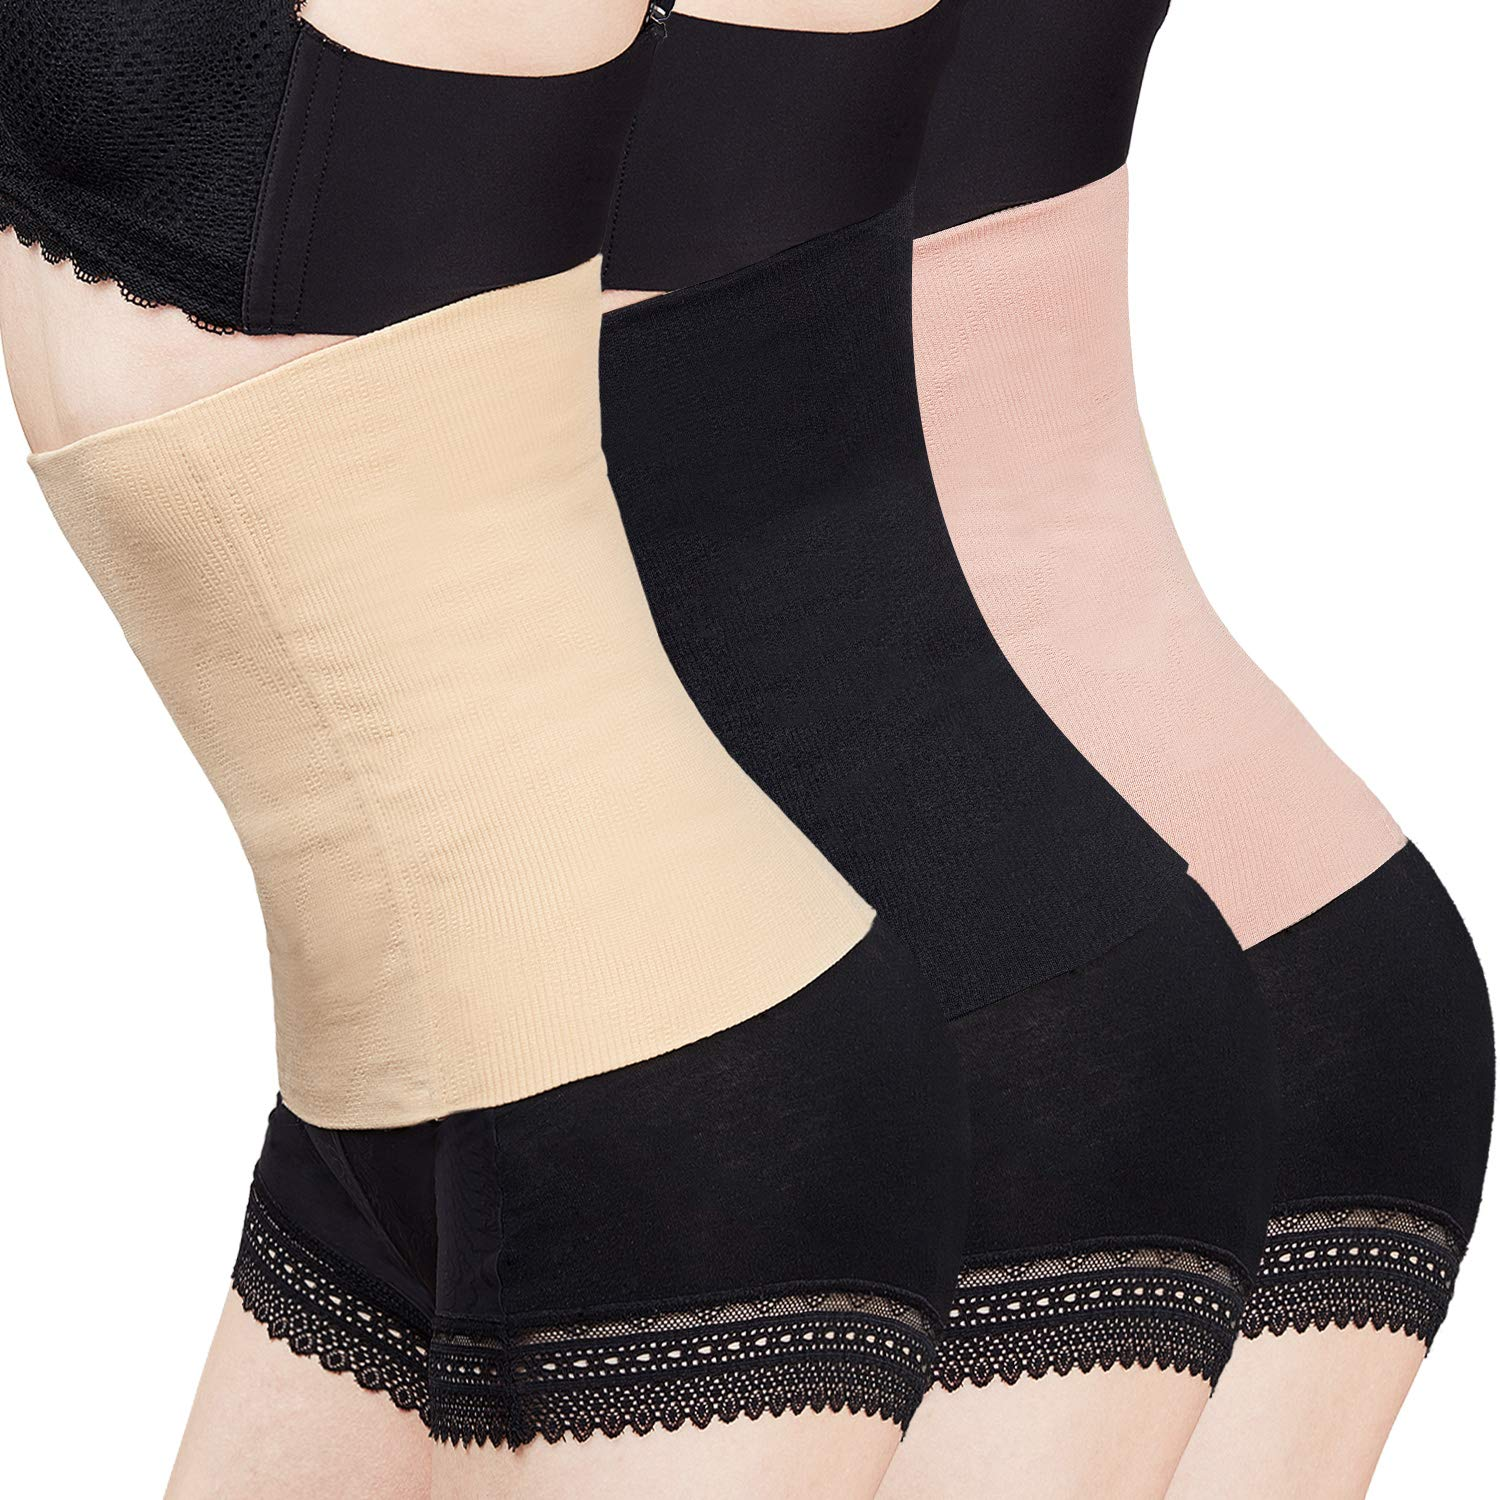 3 Pieces Seamless Postpartum Belly Recovery Band Women Waist Shapewear C-Section Recovery Belt Binder Slimming Shapewear